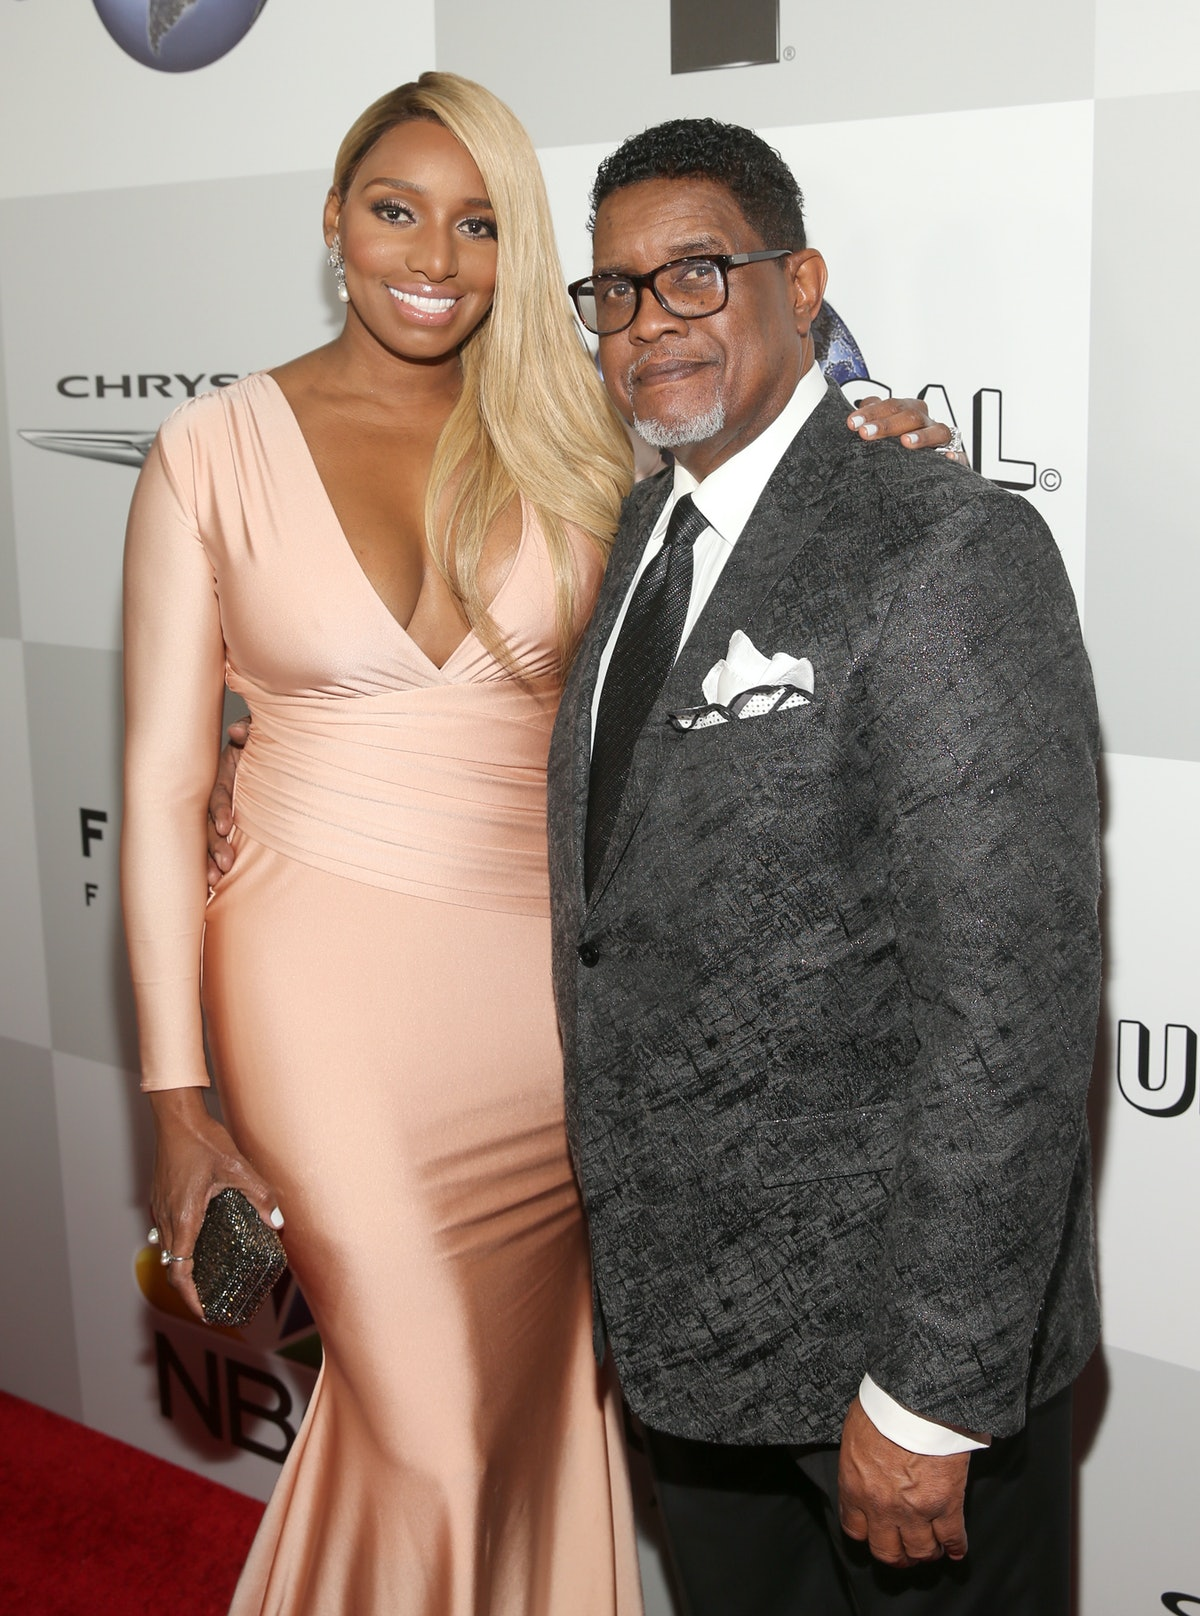 Things Are Improving For 'RHOA' Star NeNe Leakes' Husband Gregg Following Cancer